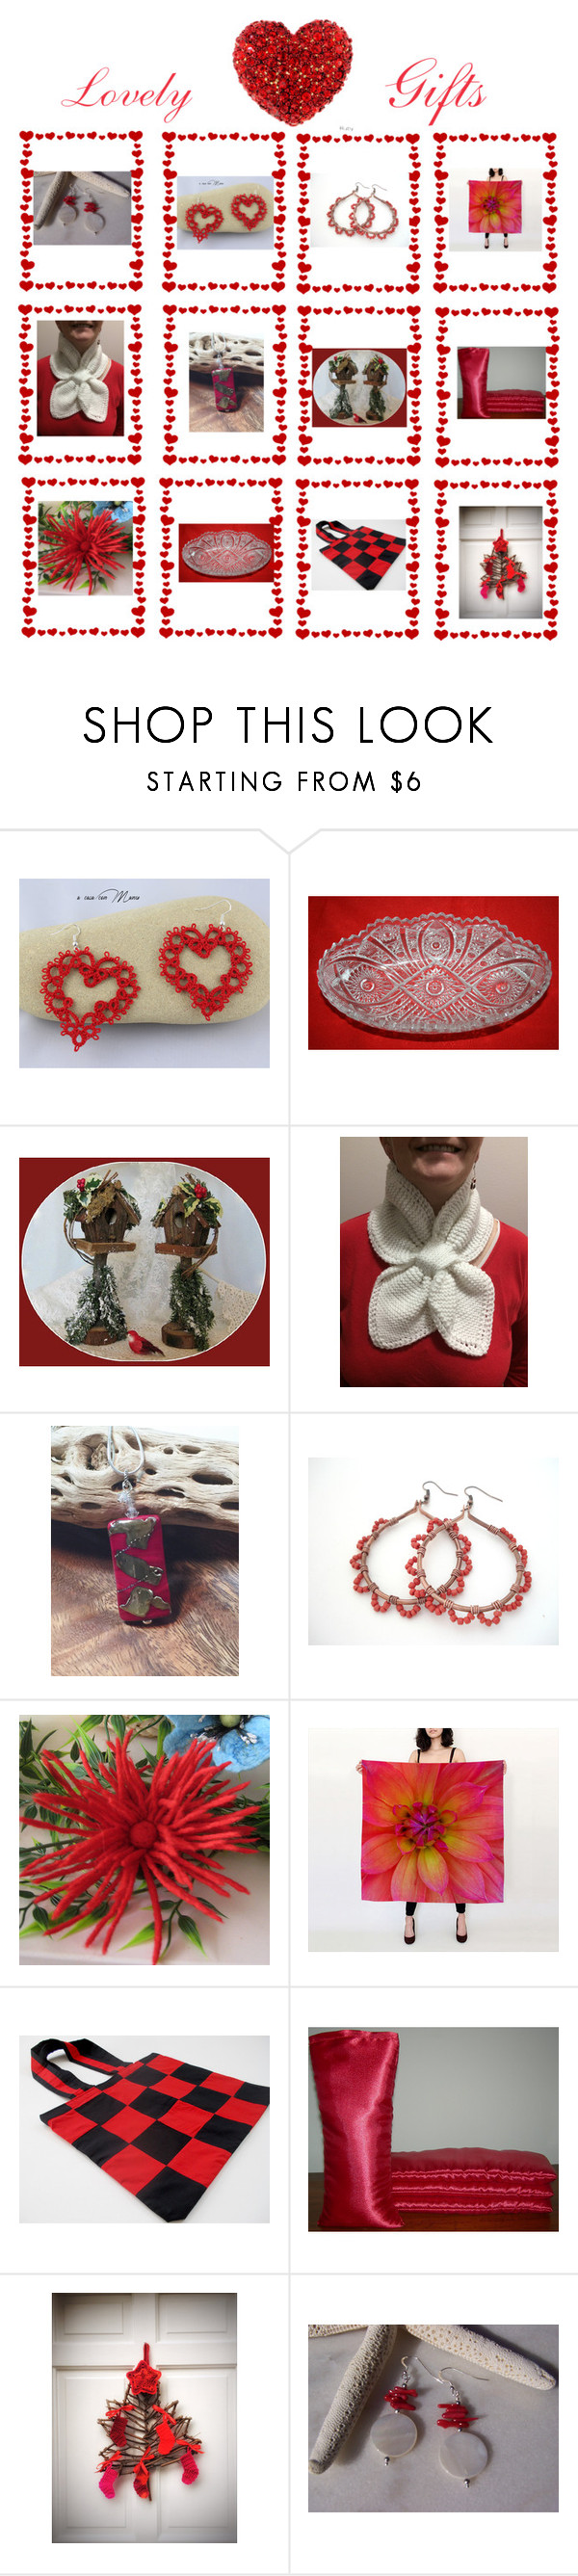 """""""Love-ly"""" by therusticpelican ❤ liked on Polyvore featuring Hostess, modern, contemporary, rustic and vintage"""